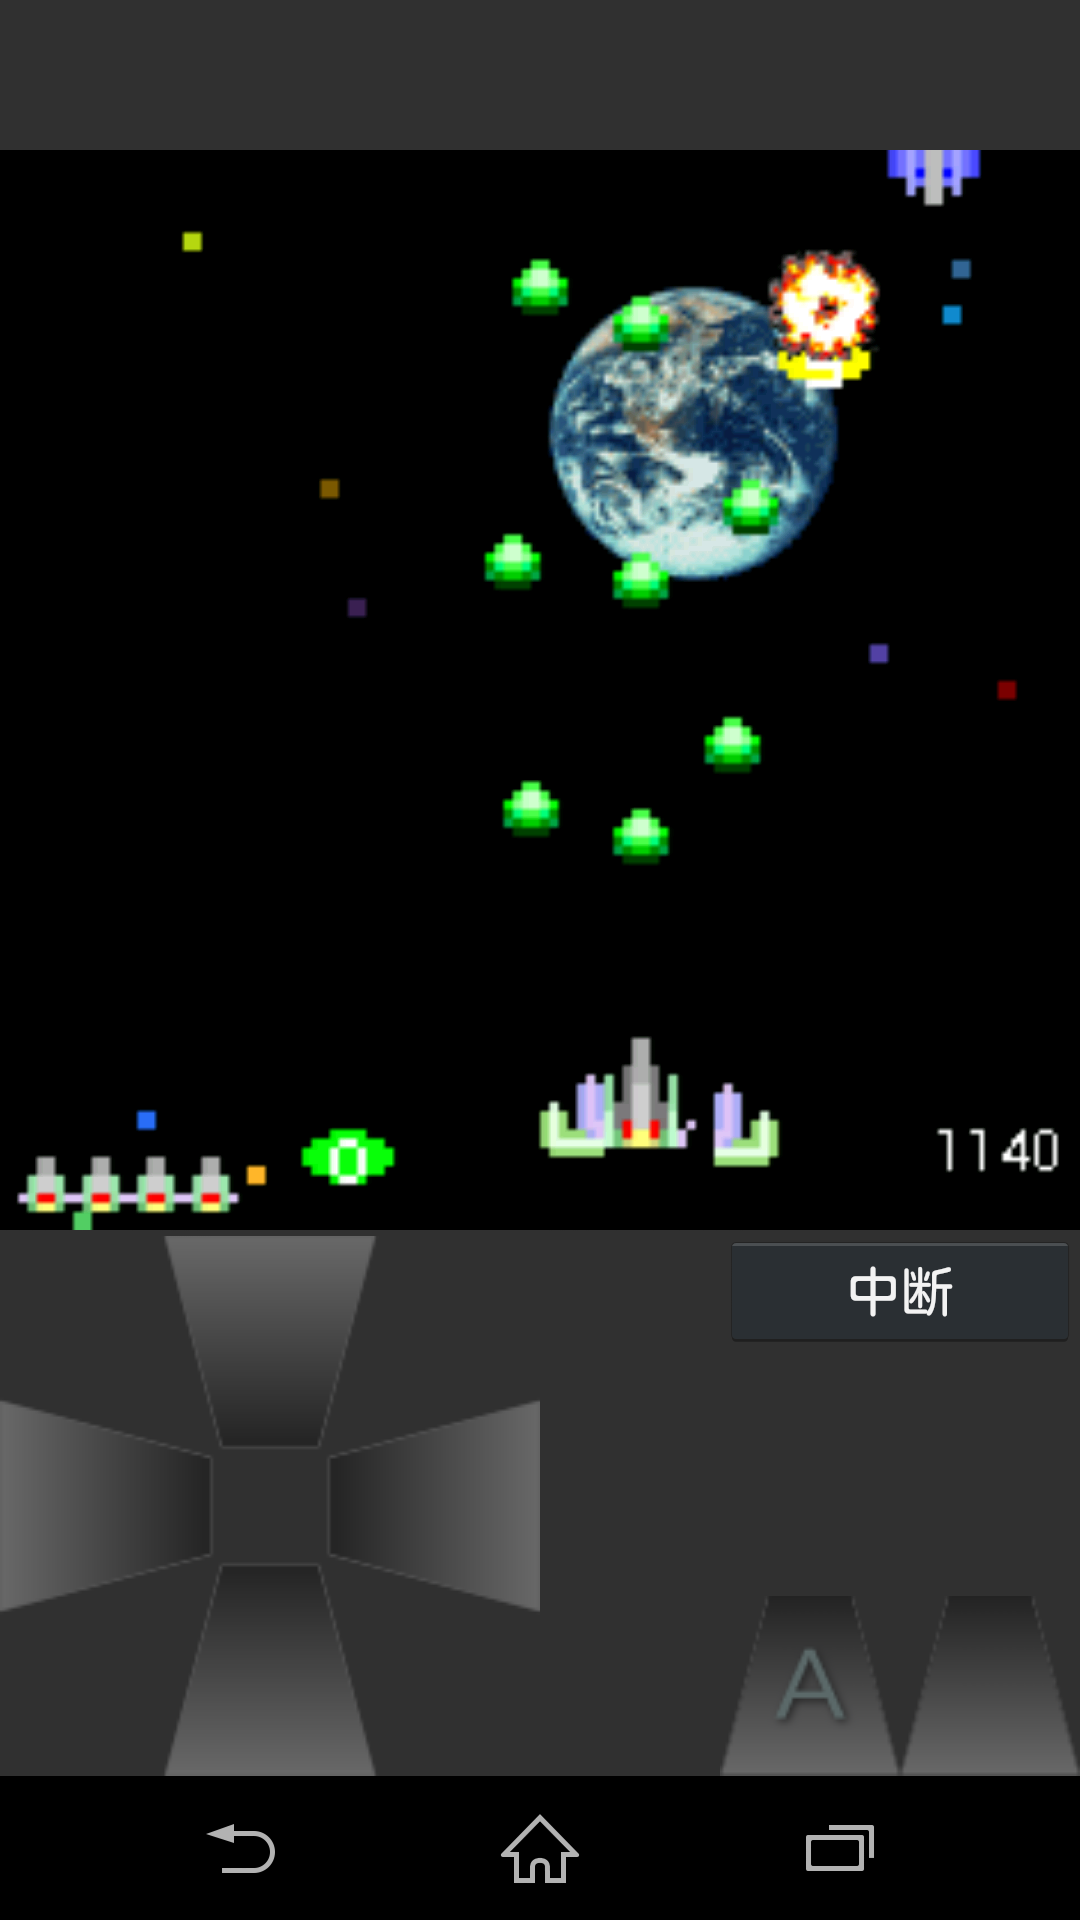 Androidシューティングゲームアプリ「Shoot! DX」画面2